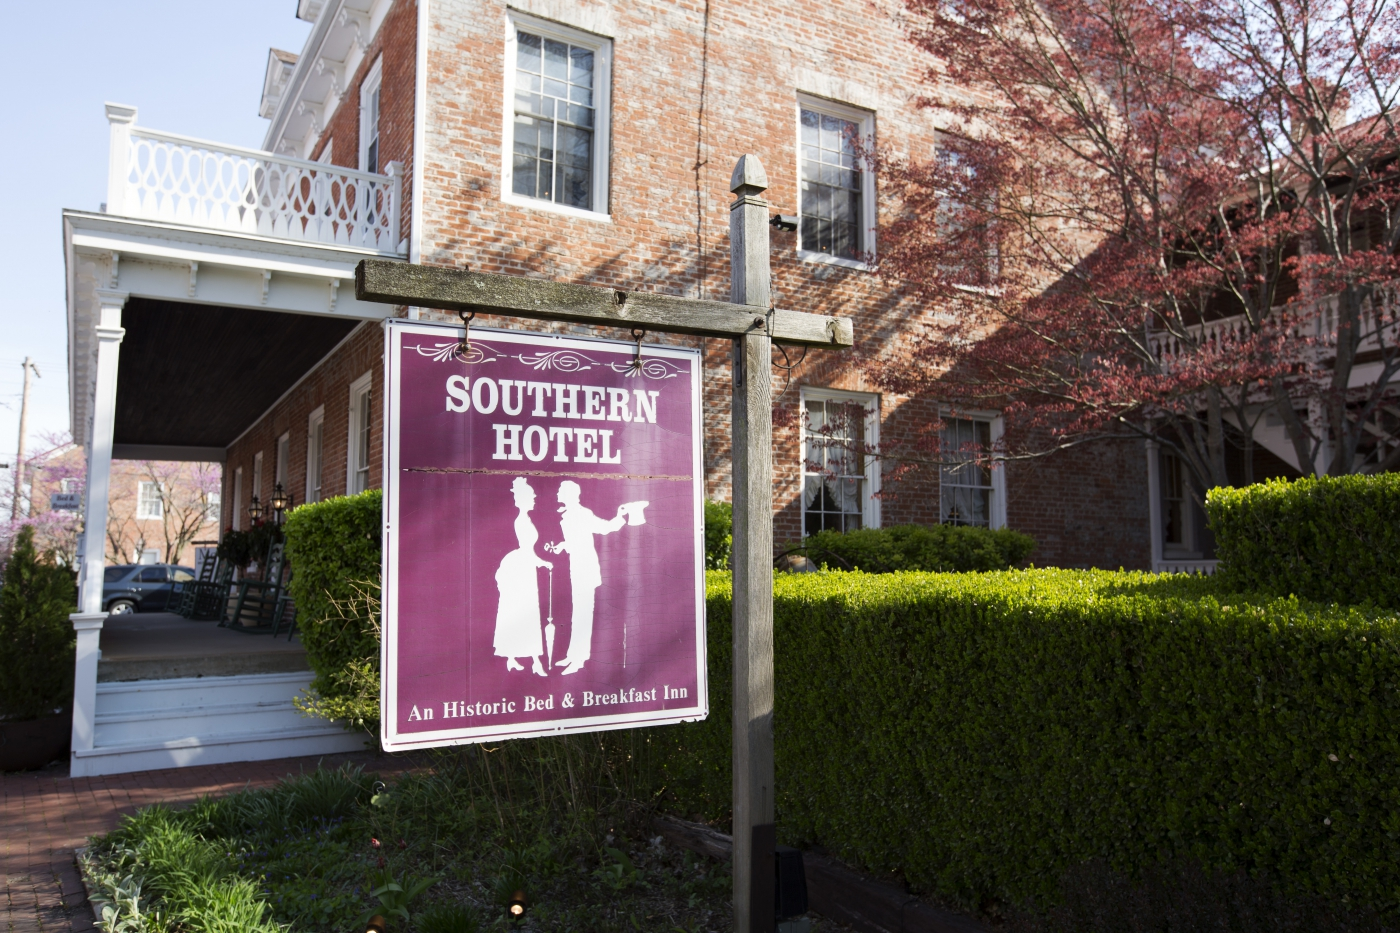 Stay at the Southern Hotel, the oldest operating hotel west of the Mississippi River!